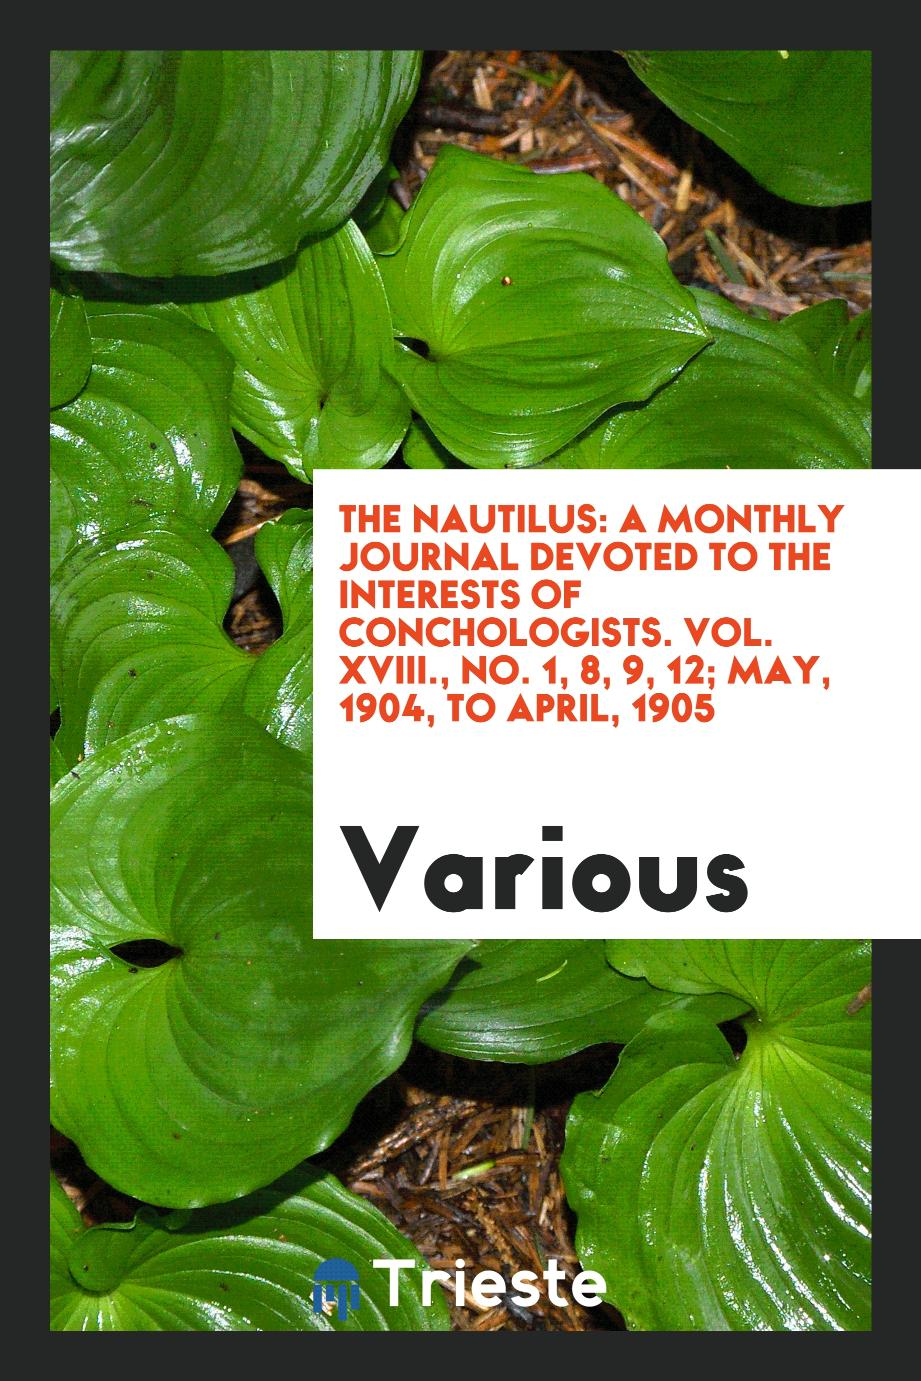 The Nautilus: A monthly journal devoted to the interests of conchologists. Vol. XVIII., No. 1, 8, 9, 12; May, 1904, to April, 1905